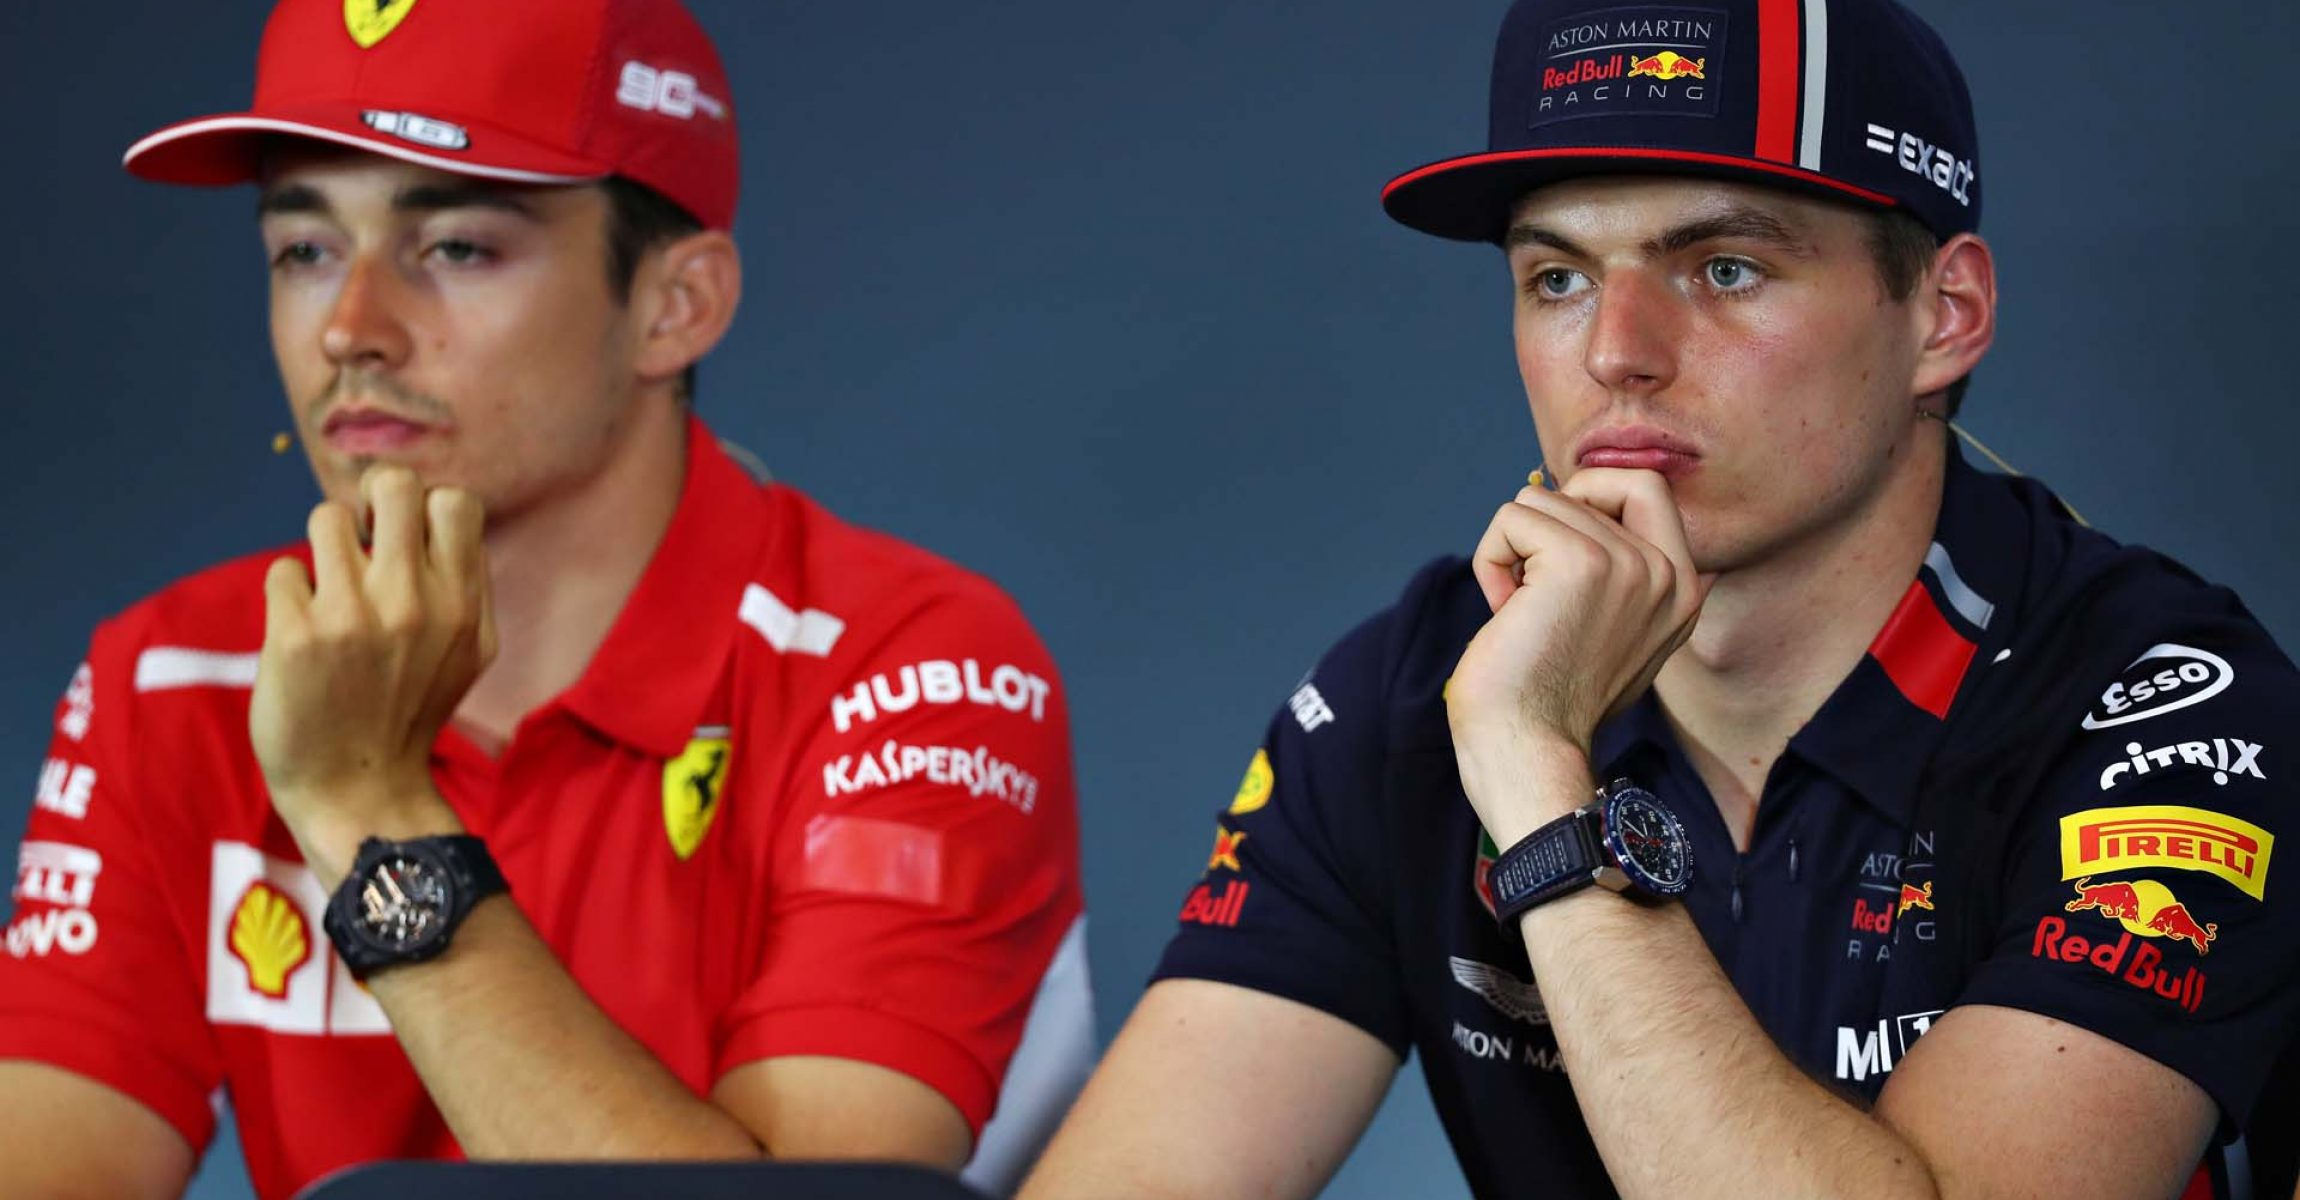 SPIELBERG, AUSTRIA - JUNE 27: Max Verstappen of Netherlands and Red Bull Racing and Charles Leclerc of Monaco and Ferrari look on in the Drivers Press Conference during previews ahead of the F1 Grand Prix of Austria at Red Bull Ring on June 27, 2019 in Spielberg, Austria. (Photo by Lars Baron/Getty Images) // Getty Images / Red Bull Content Pool // AP-1ZSA5KQAH1W11 // Usage for editorial use only // Please go to www.redbullcontentpool.com for further information. //